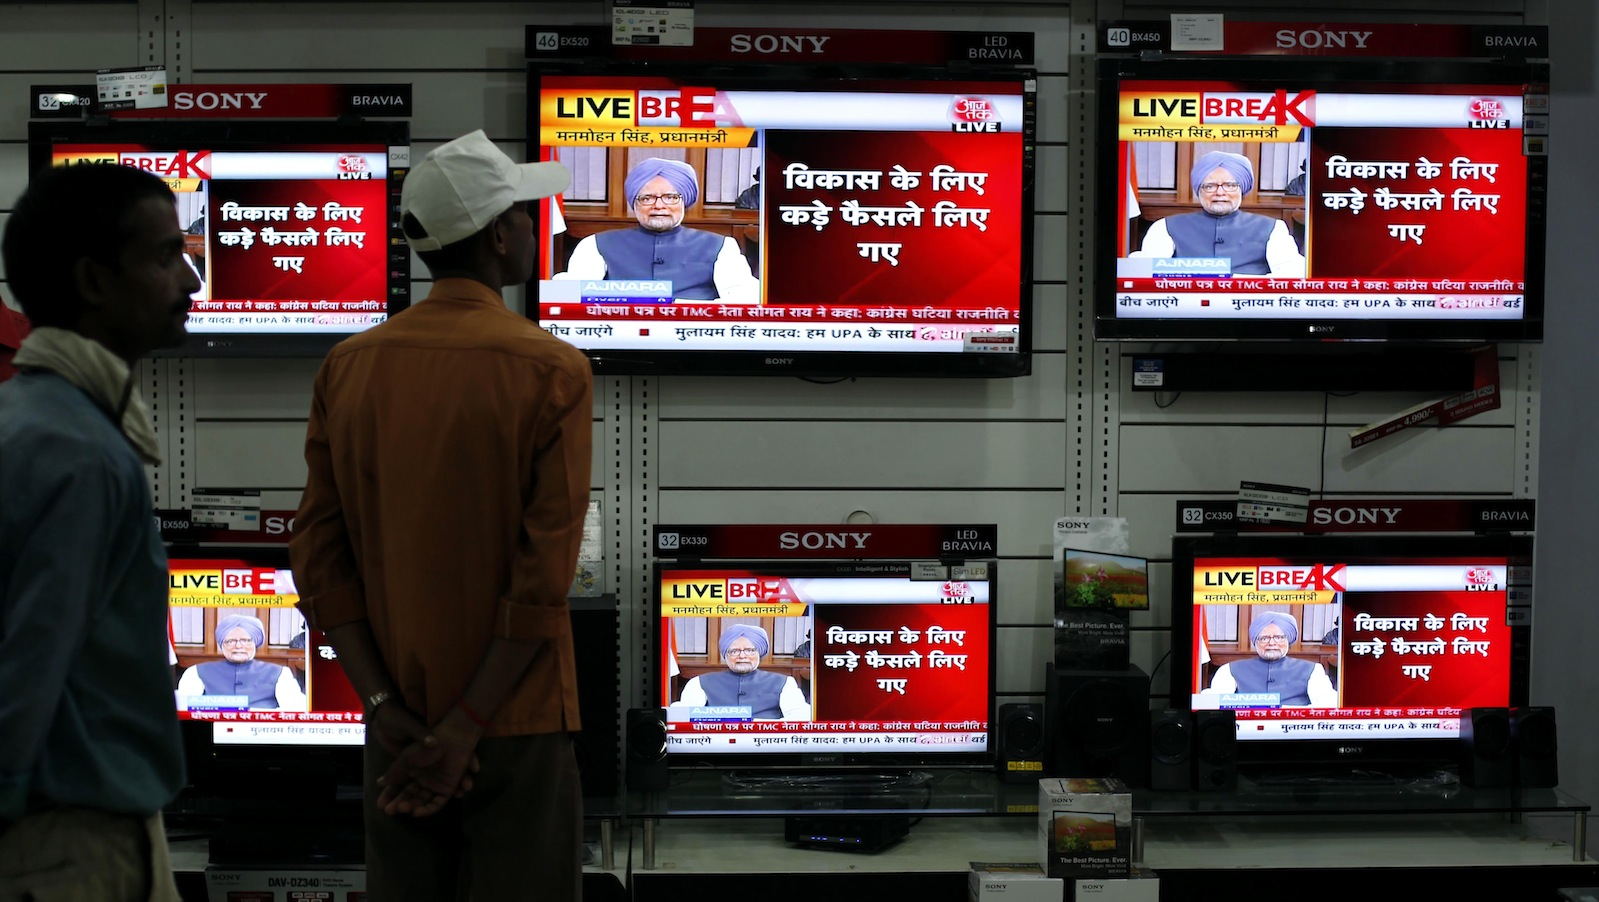 Indians watch Prime Minister Manmohan Singh address the nation on television, at a television showroom in Allahabad, India, Friday, Sept. 21, 2012. Singh's address to the nation came after the Trinamool Congress party pulled out of the ruling coalition protesting the decision to allow foreign retail chains to come into the country. (AP Photo/Rajesh Kumar Singh)